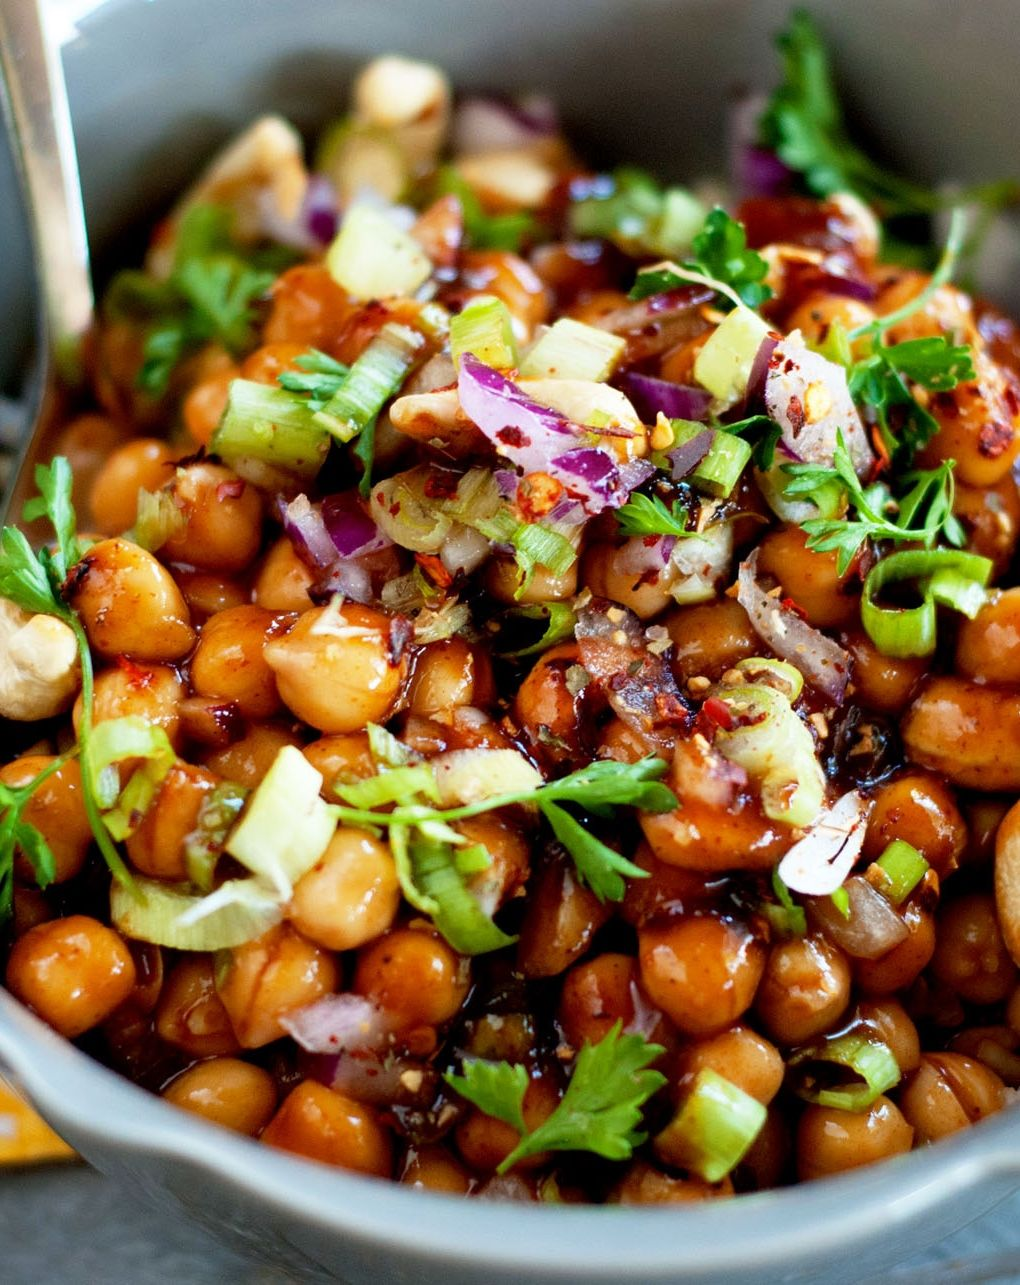 Swap The Meat With Flavorful Chickpeas In This Classic